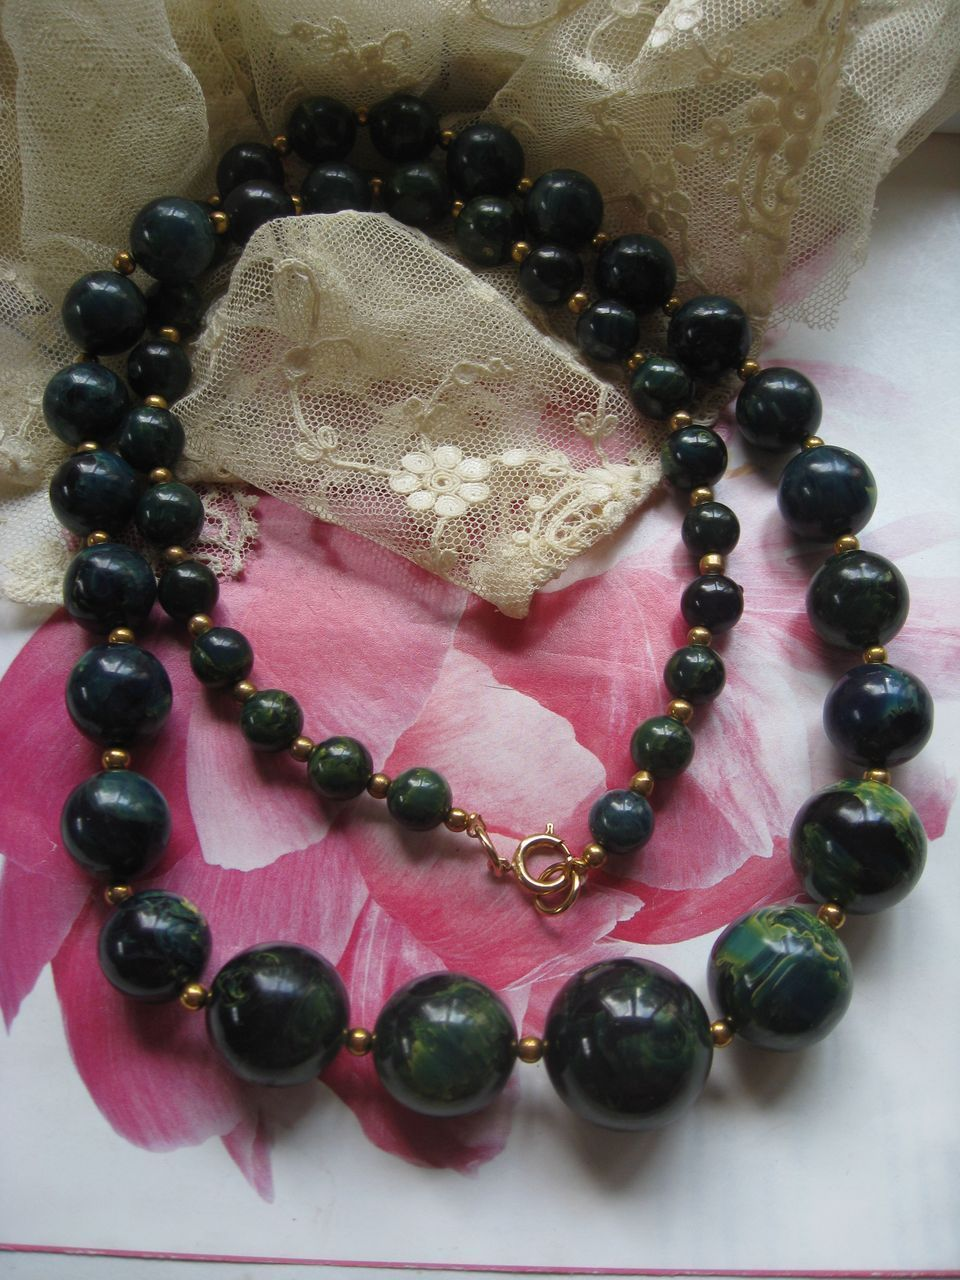 End of Day Bakelite Necklace